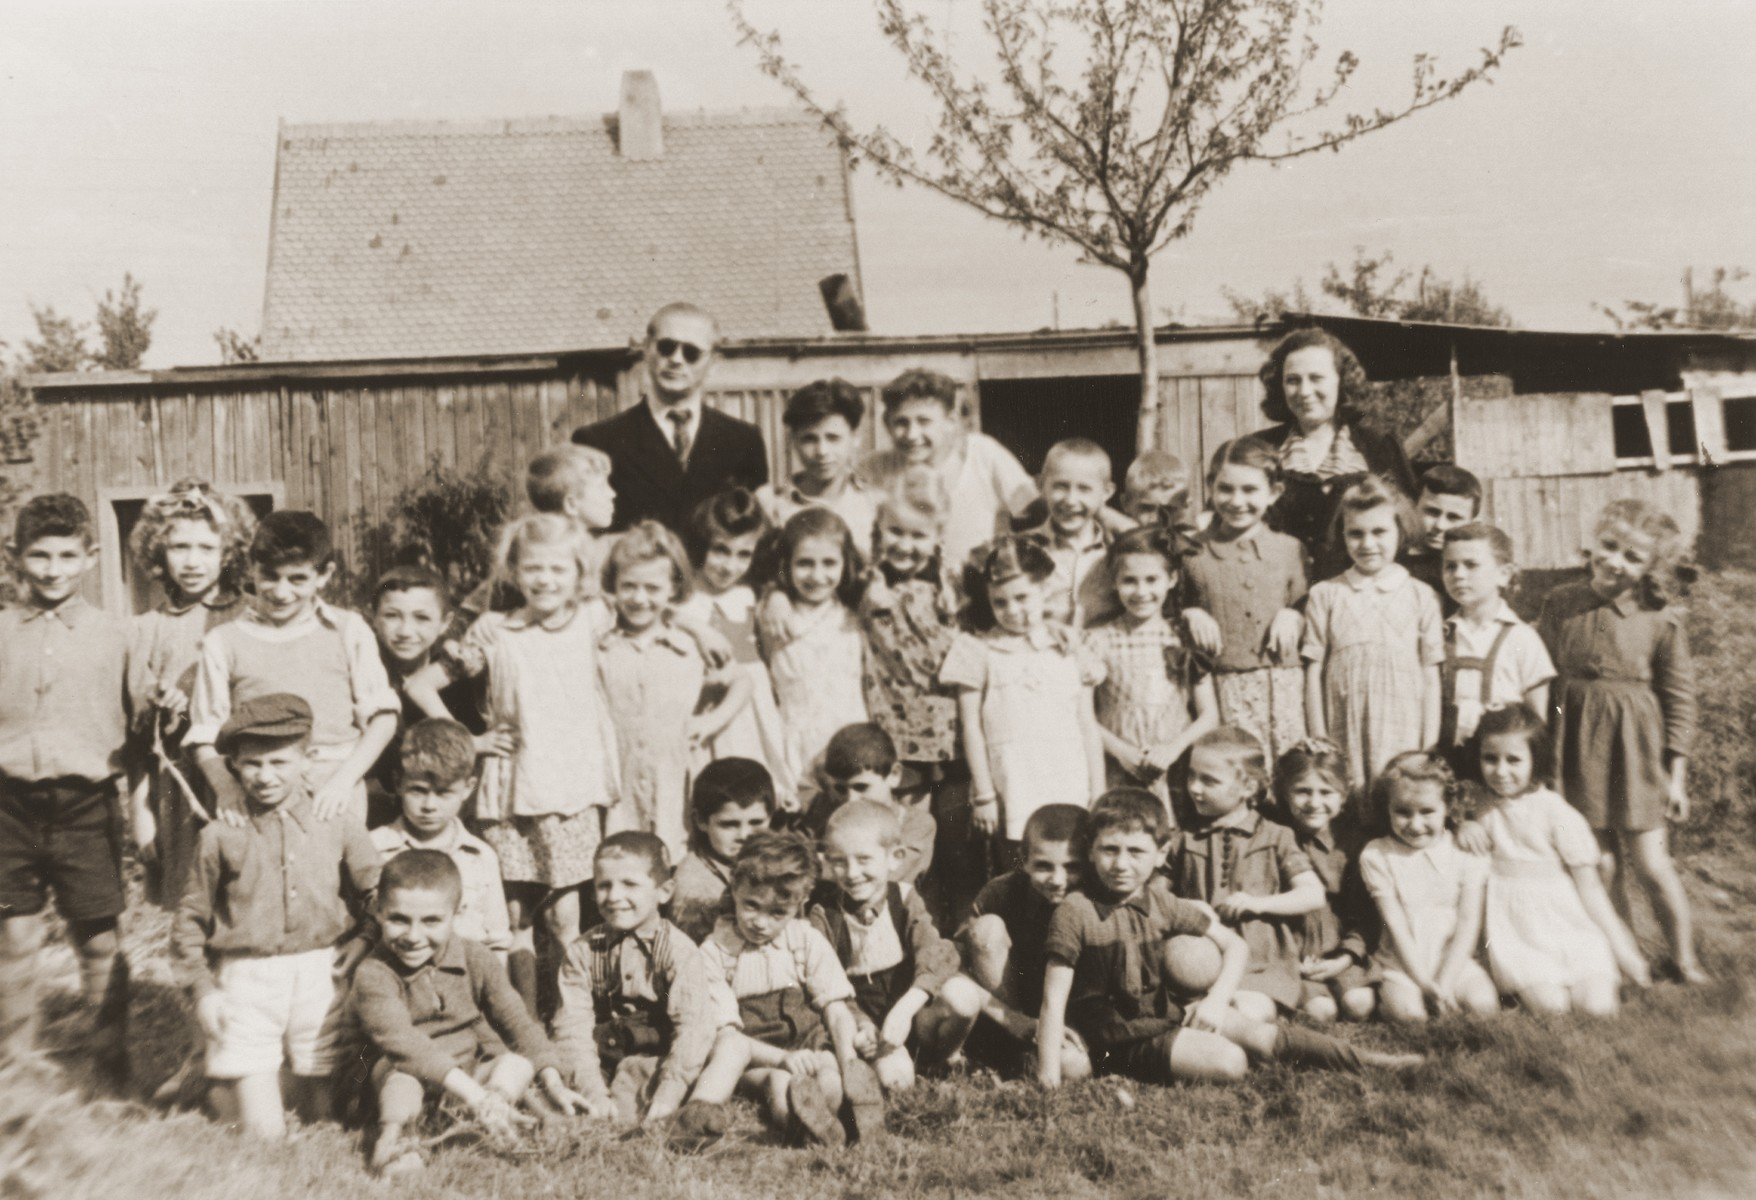 Group portrait of a class of school children in the Neu Freimann displaced persons camp.